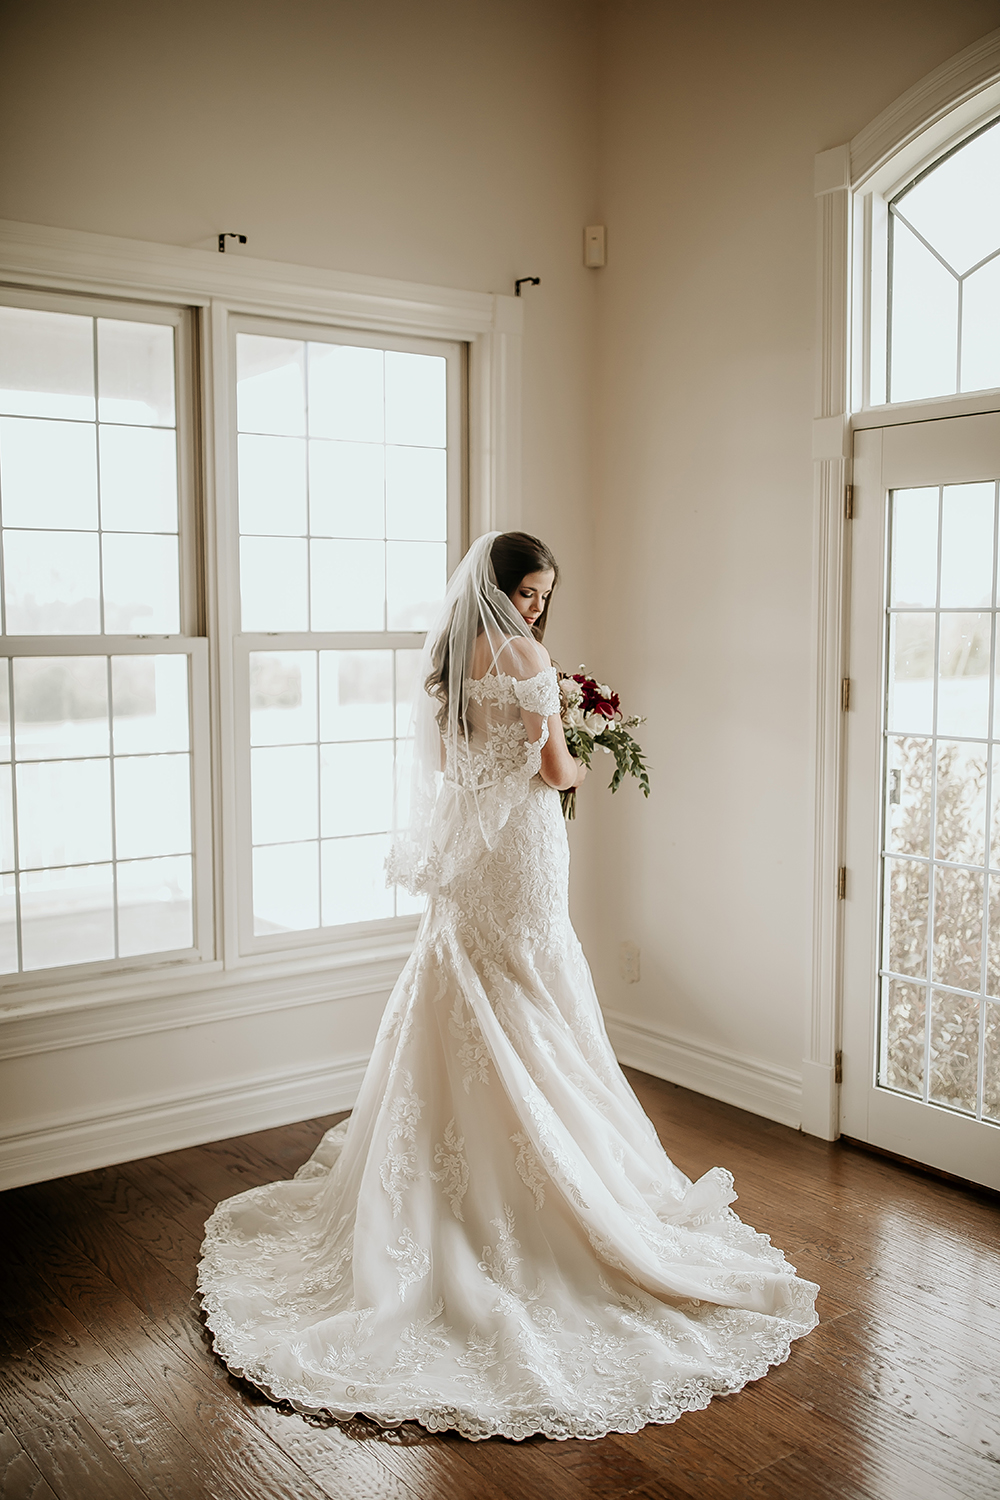 Bride in a Classic Lace Wedding Gown and Veil